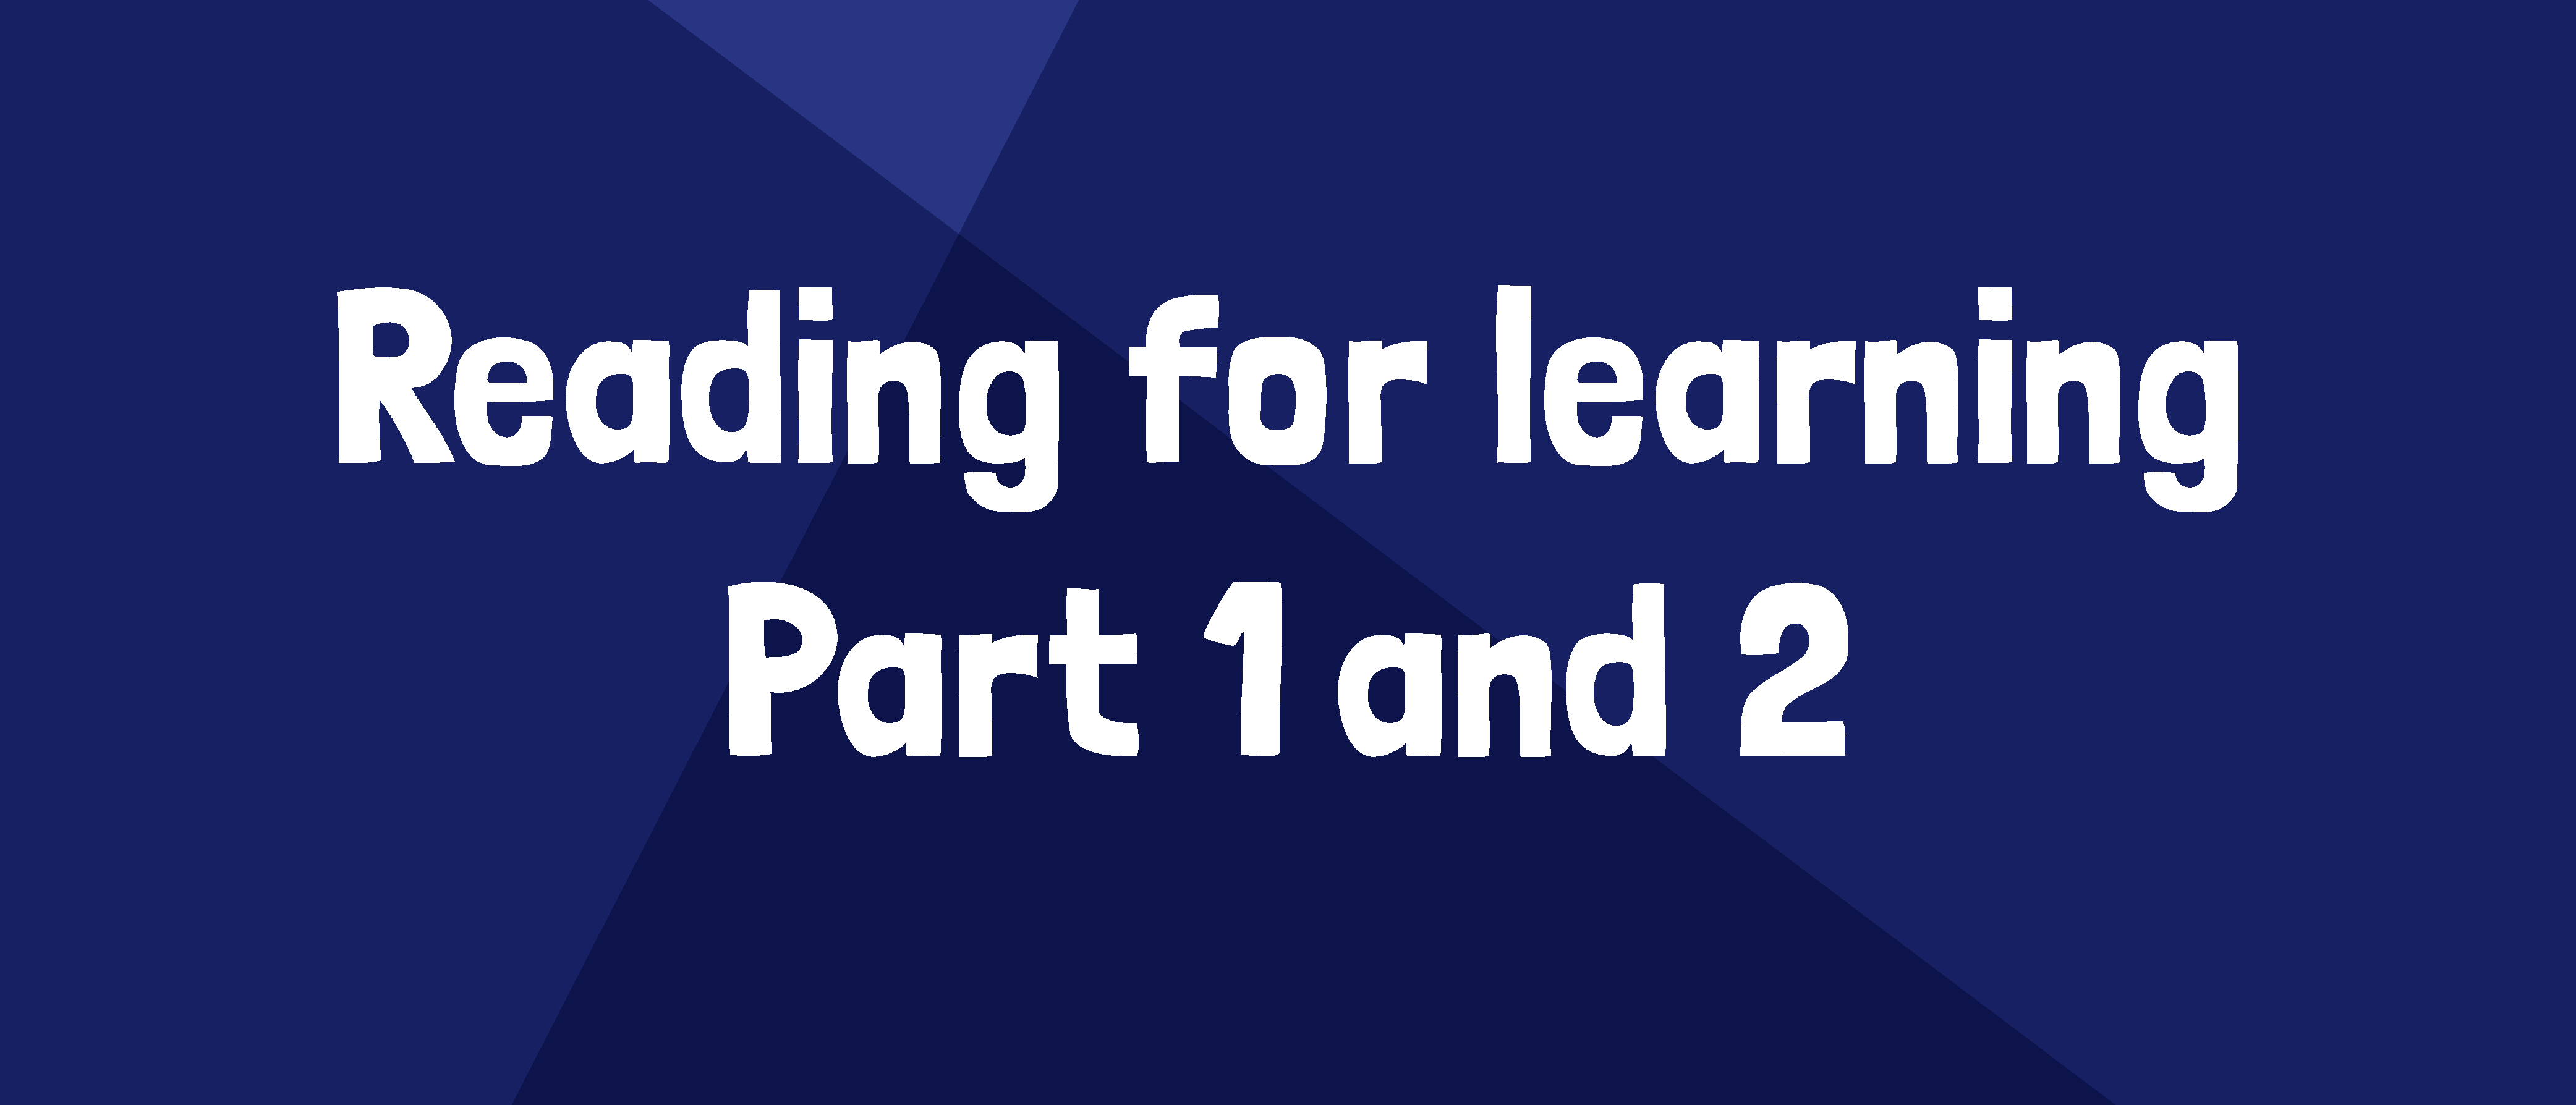 reading for learningWEB_BANNER-combined3.png